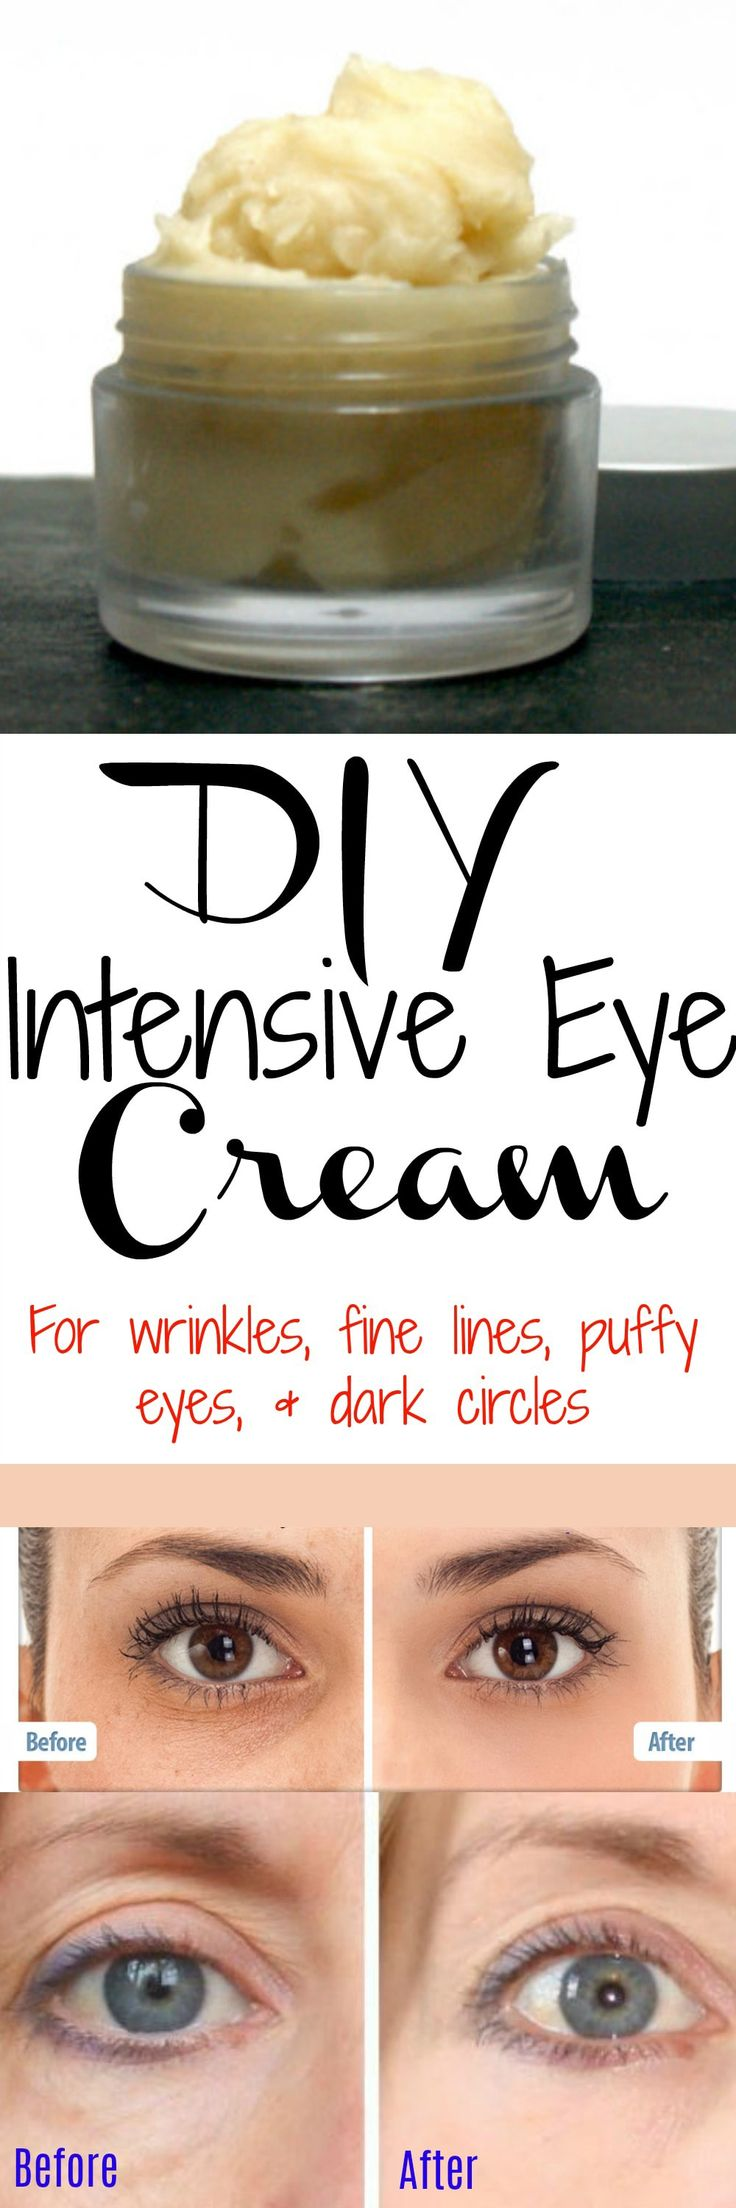 If you're not getting enough sleep, your eyes may look tired, puffy, and saggy. Even if you ARE getting enough sleep, our eyes will start to droop with age, but this homemade intensive eye cream